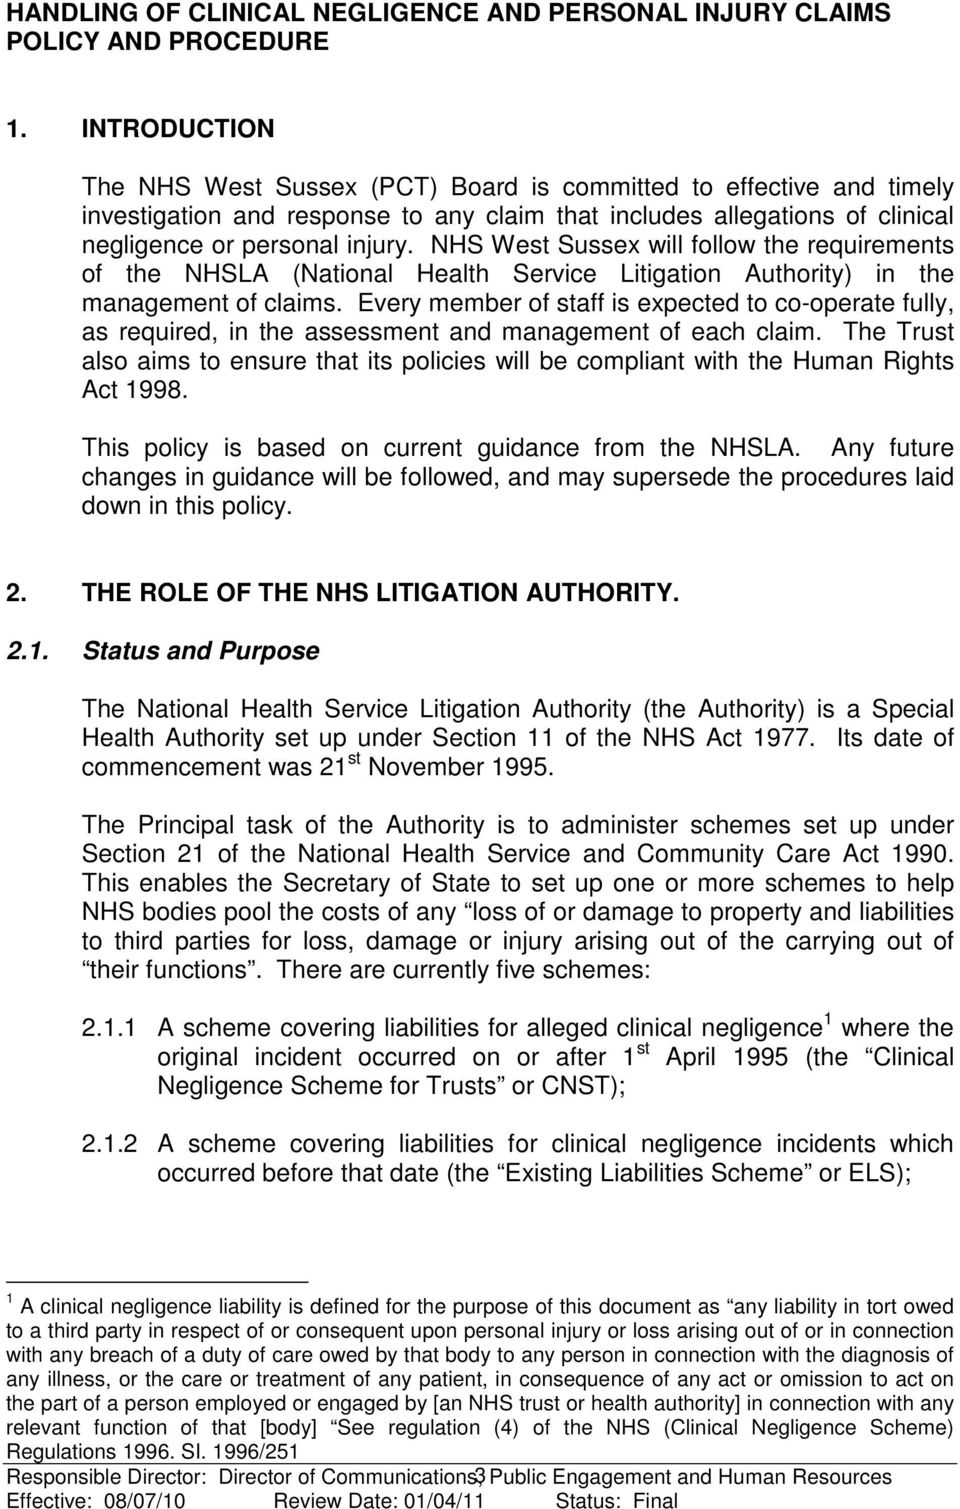 NHS West Sussex will follow the requirements of the NHSLA (National Health Service Litigation Authority) in the management of claims.